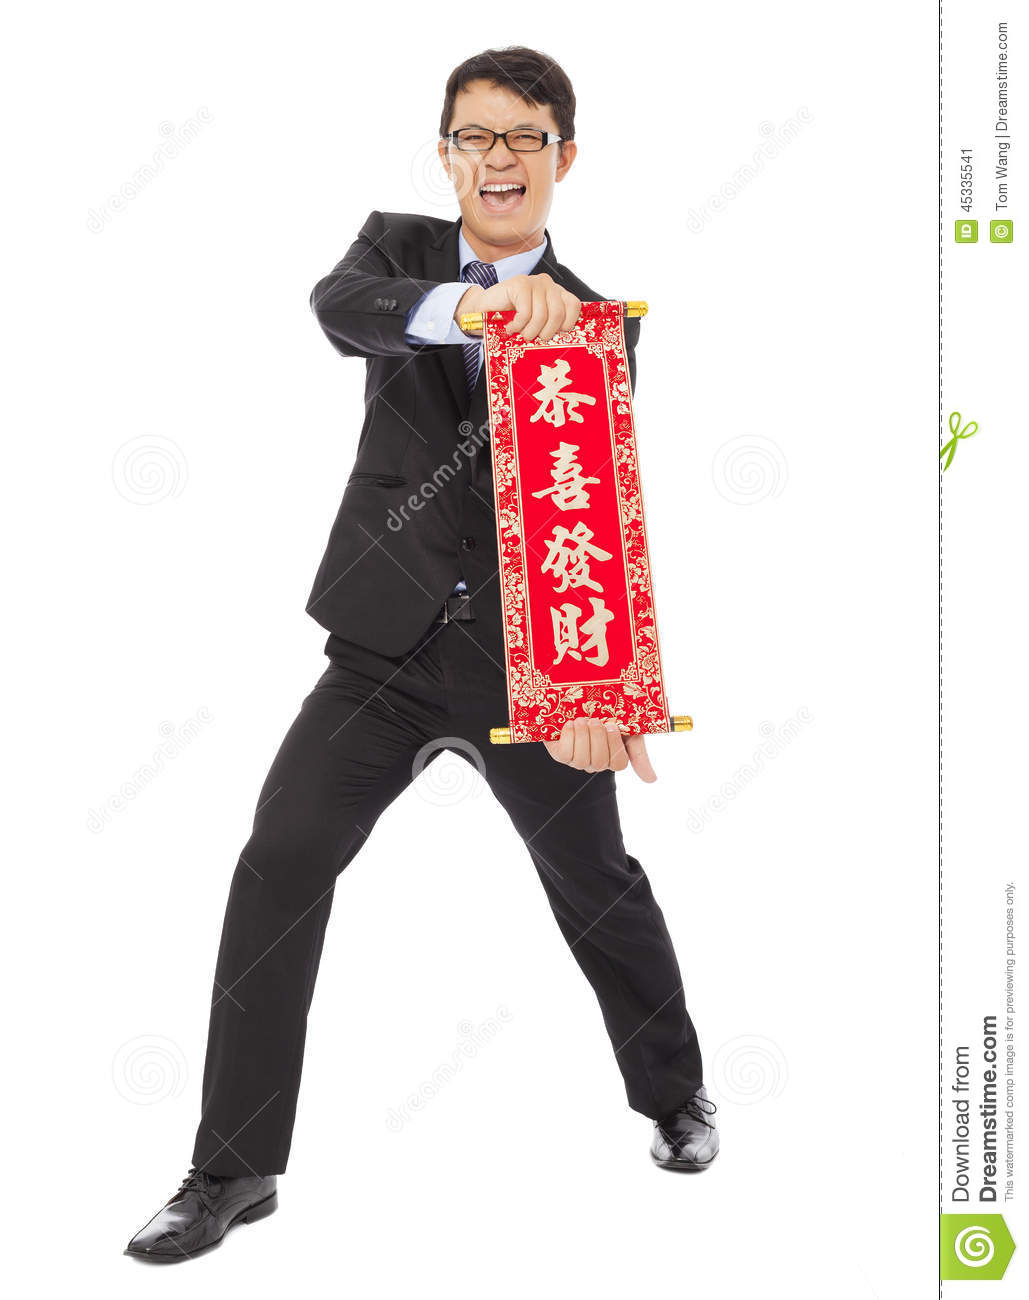 Asian young businessman holding a congratulations reel.